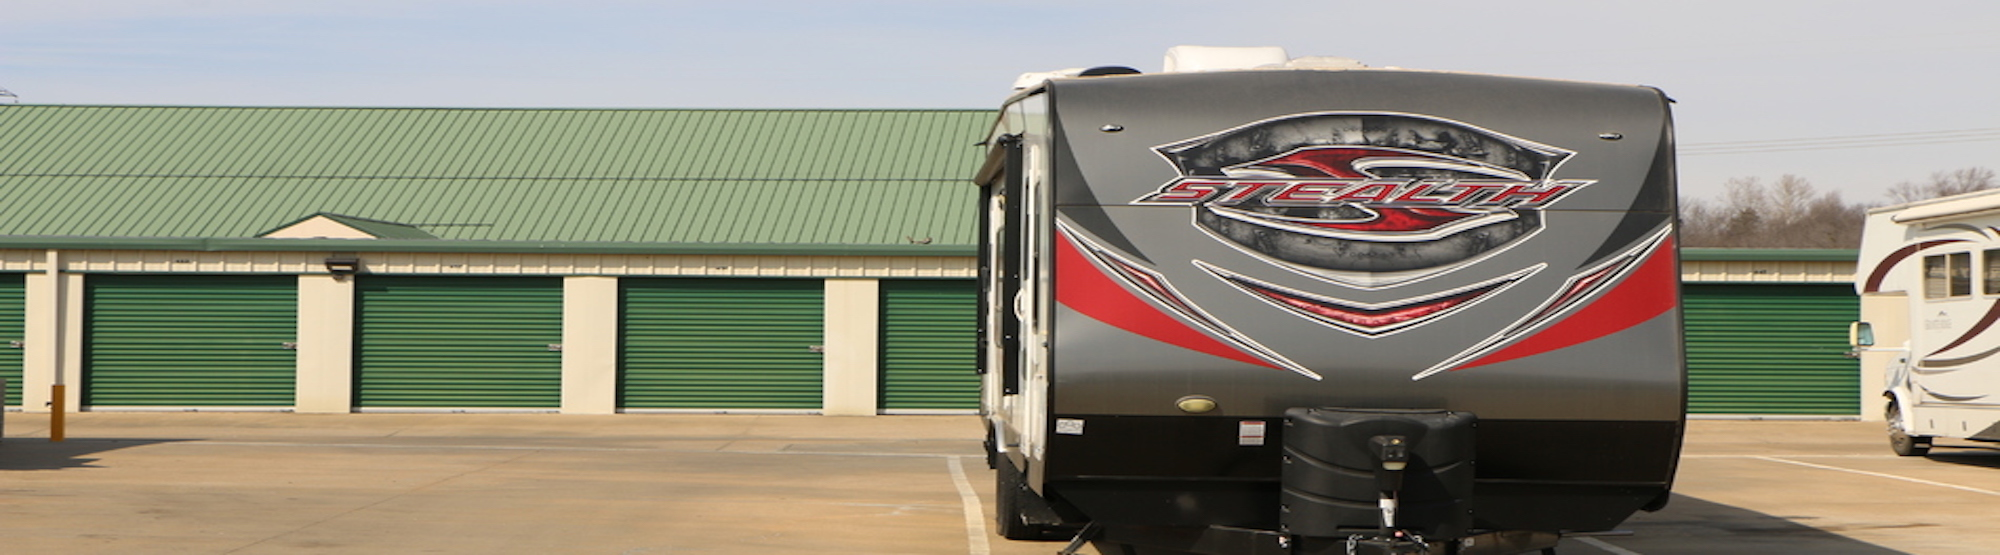 RV Storage in Broken Arrow, OK